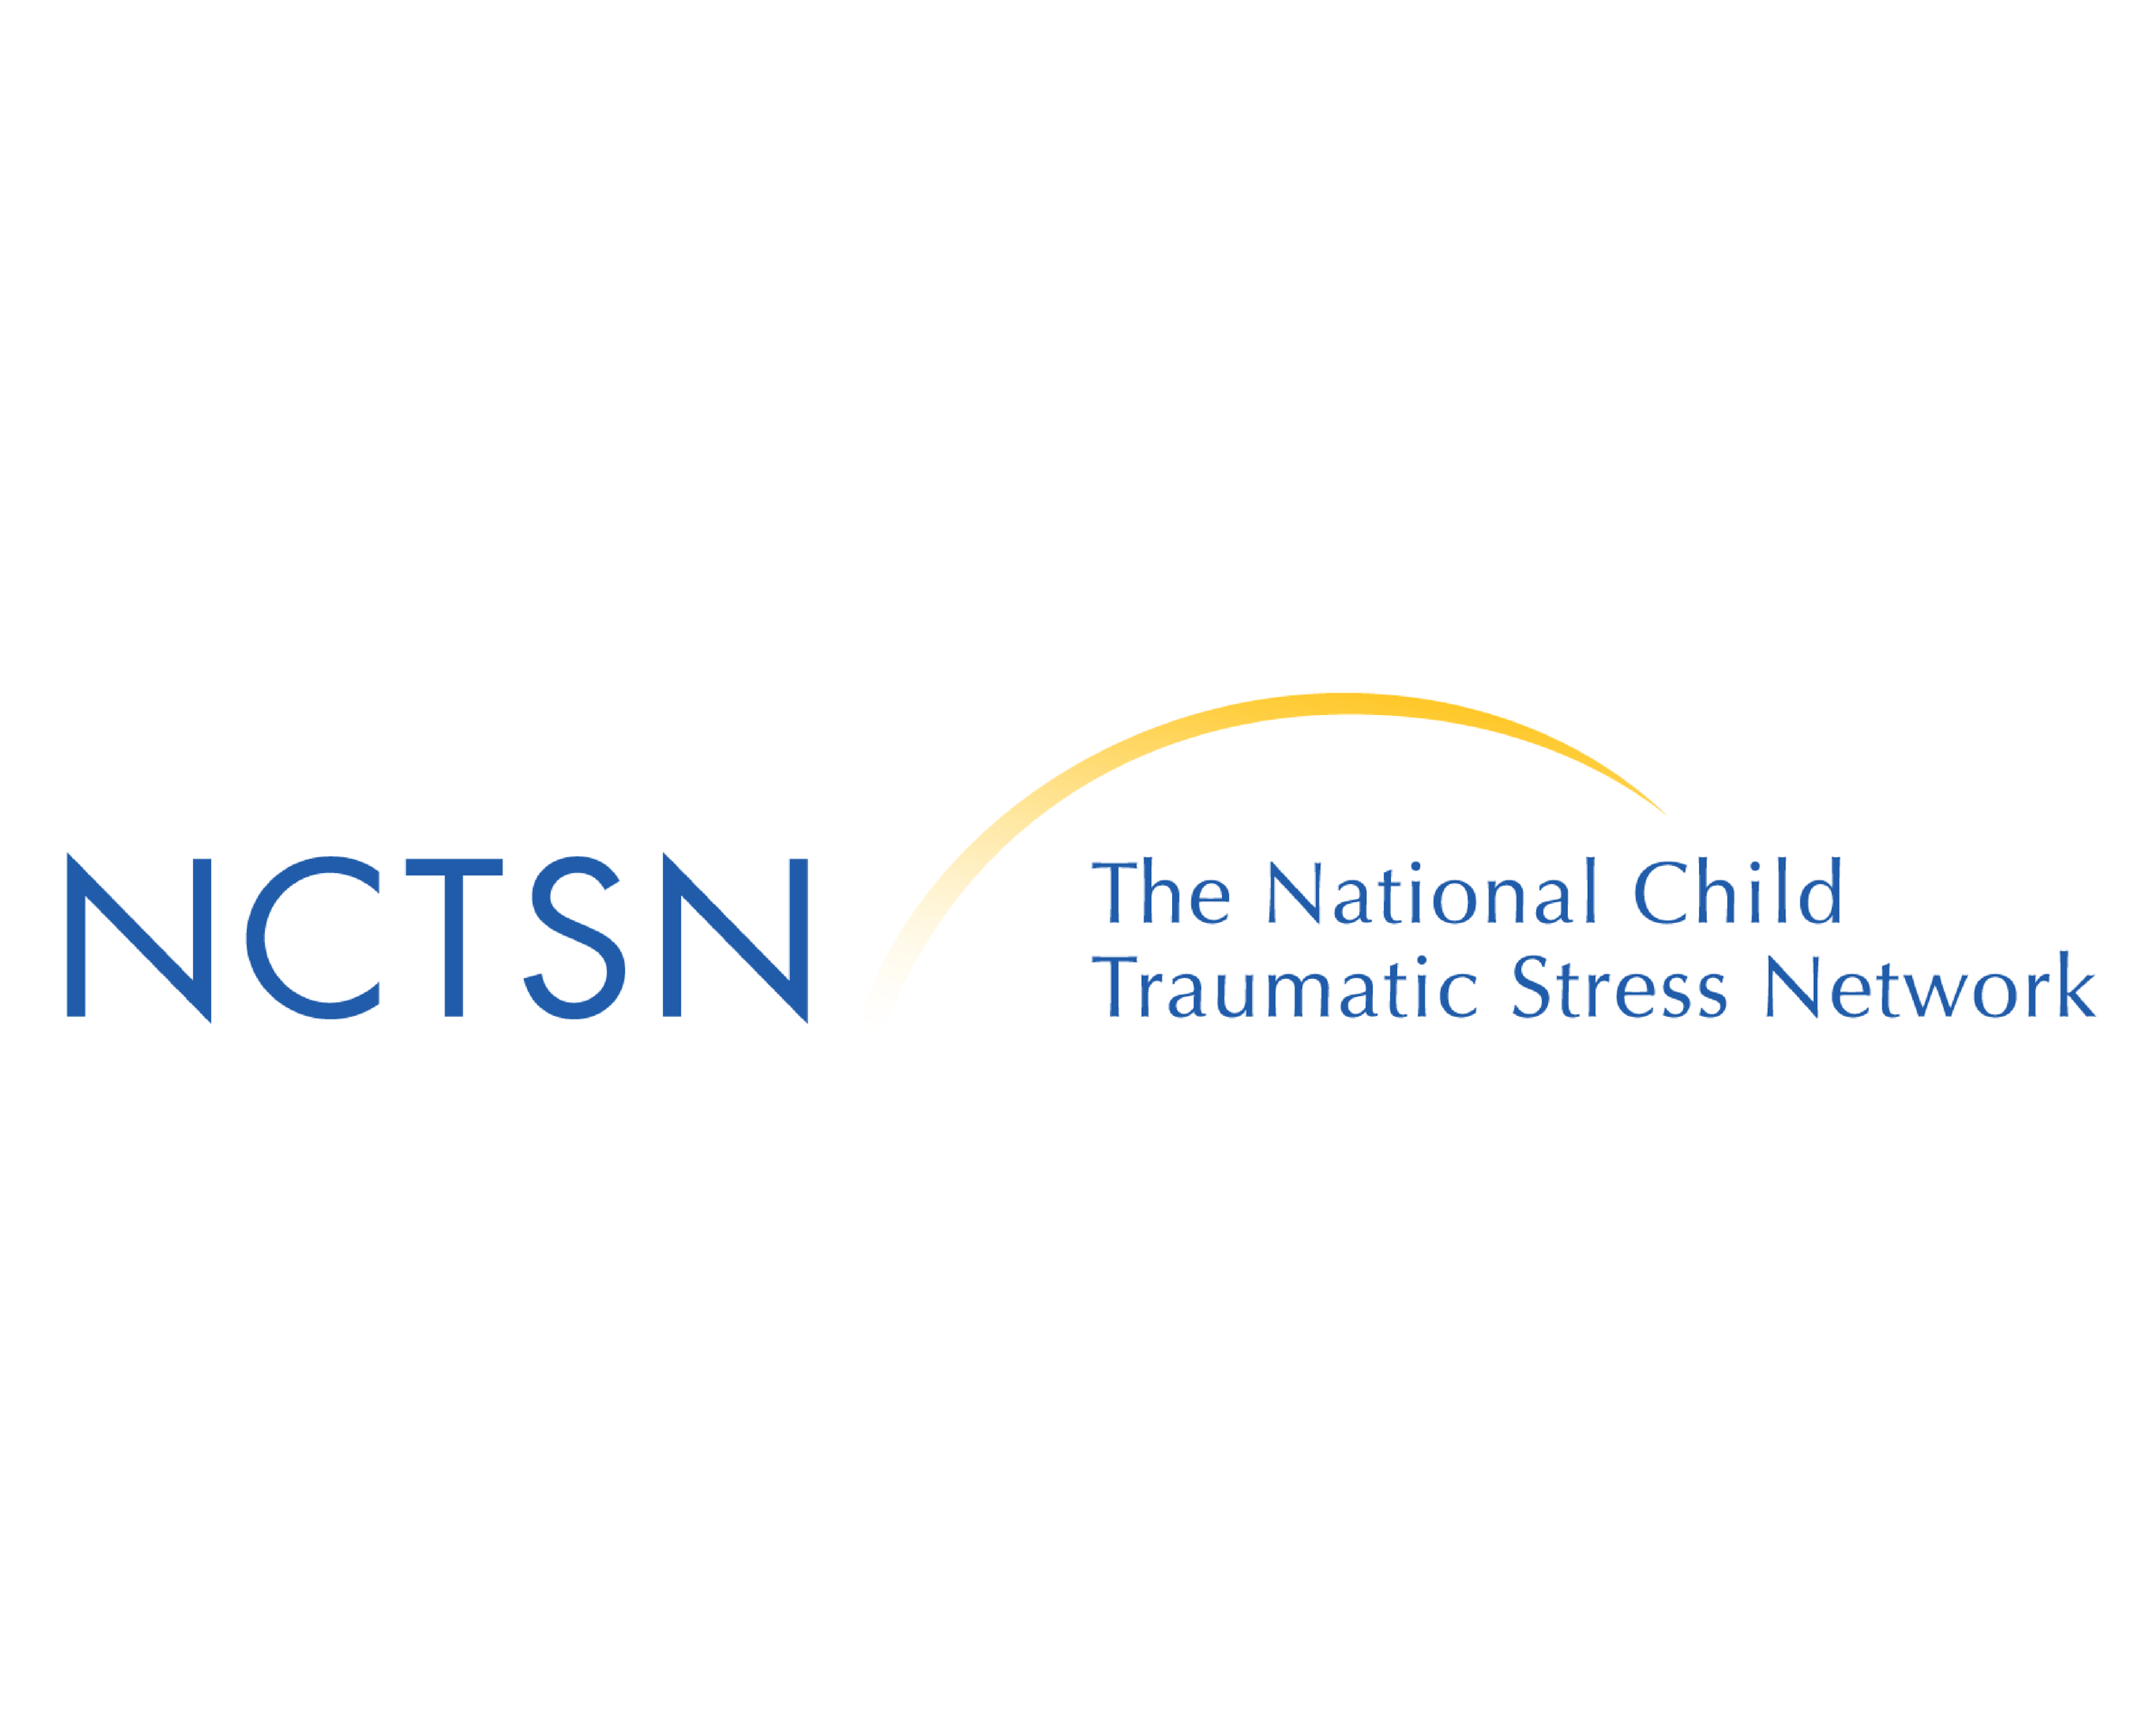 The National Child Traumatic Stress Network - The National Child Traumatic Stress Network was created as part of the Children's Health Act to raise the standard of care and increase access to services for children and families who experience or witness traumatic events.